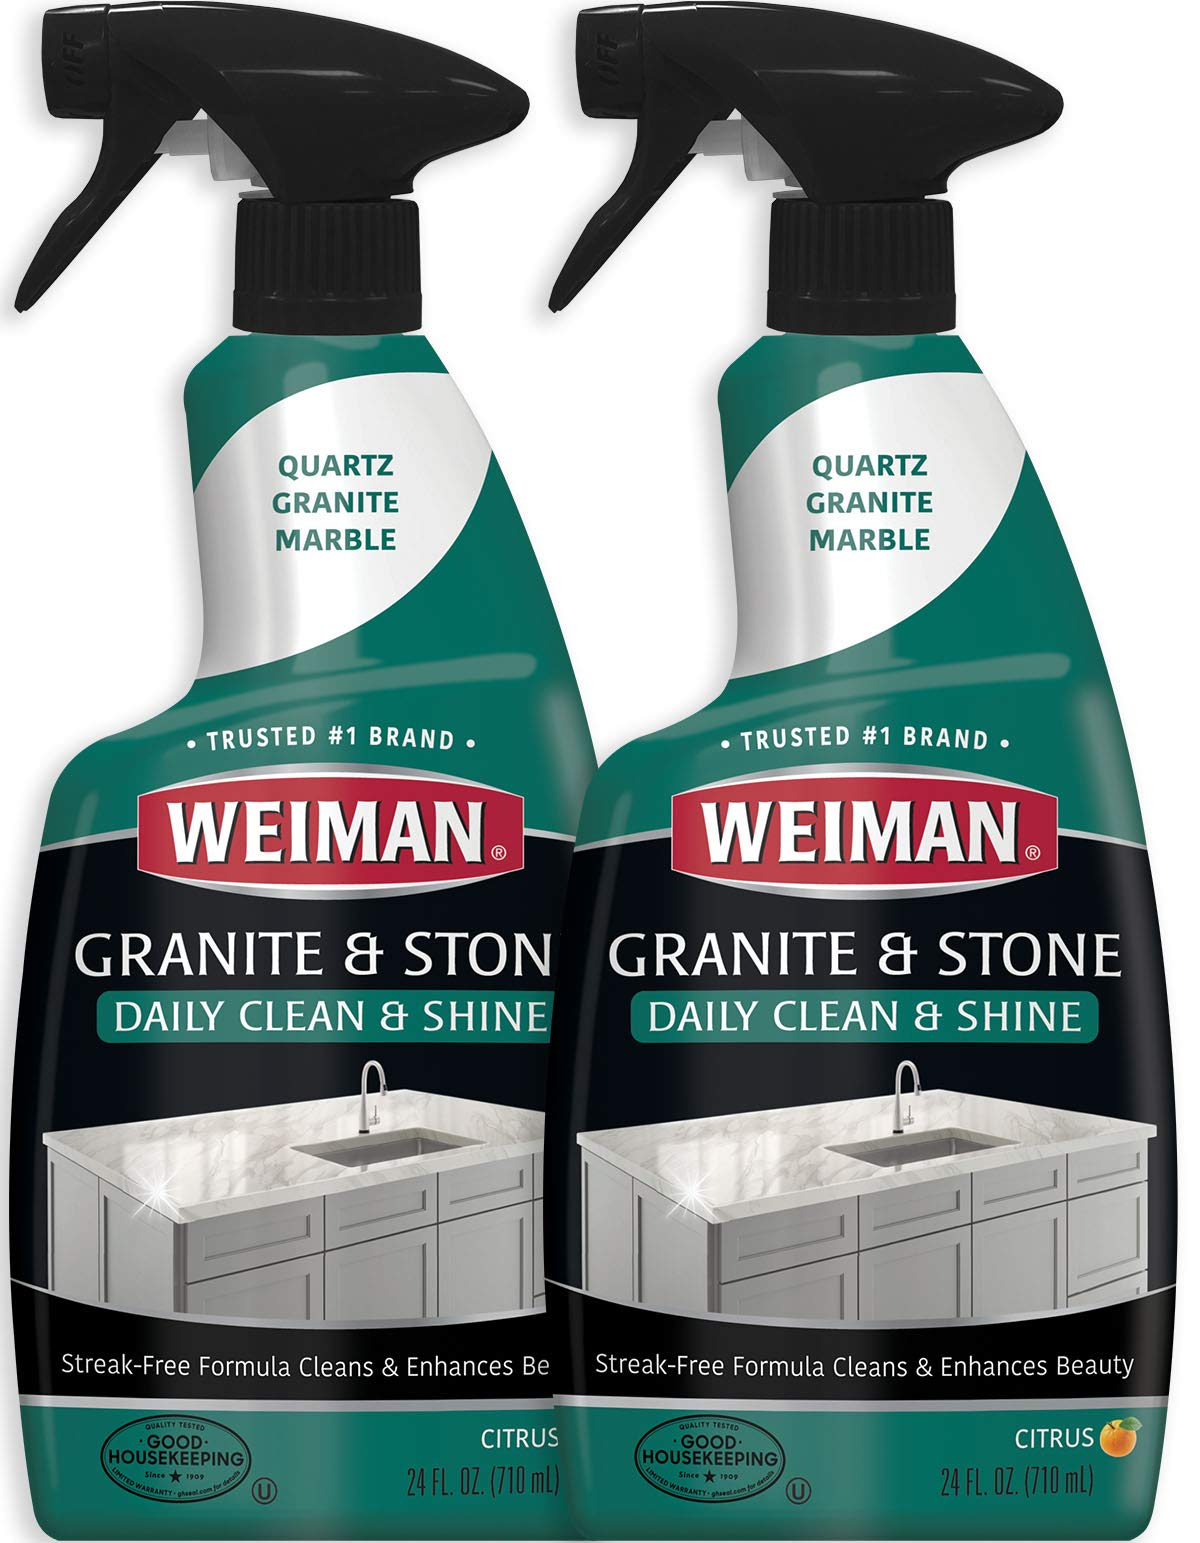 Weiman Granite Cleaner and Polish - 24 Ounce (2 Pack) Safely Cleans and Shines Granite Marble Soapstone Quartz Quartzite Slate Limestone Corian Laminate Tile Countertop by Weiman